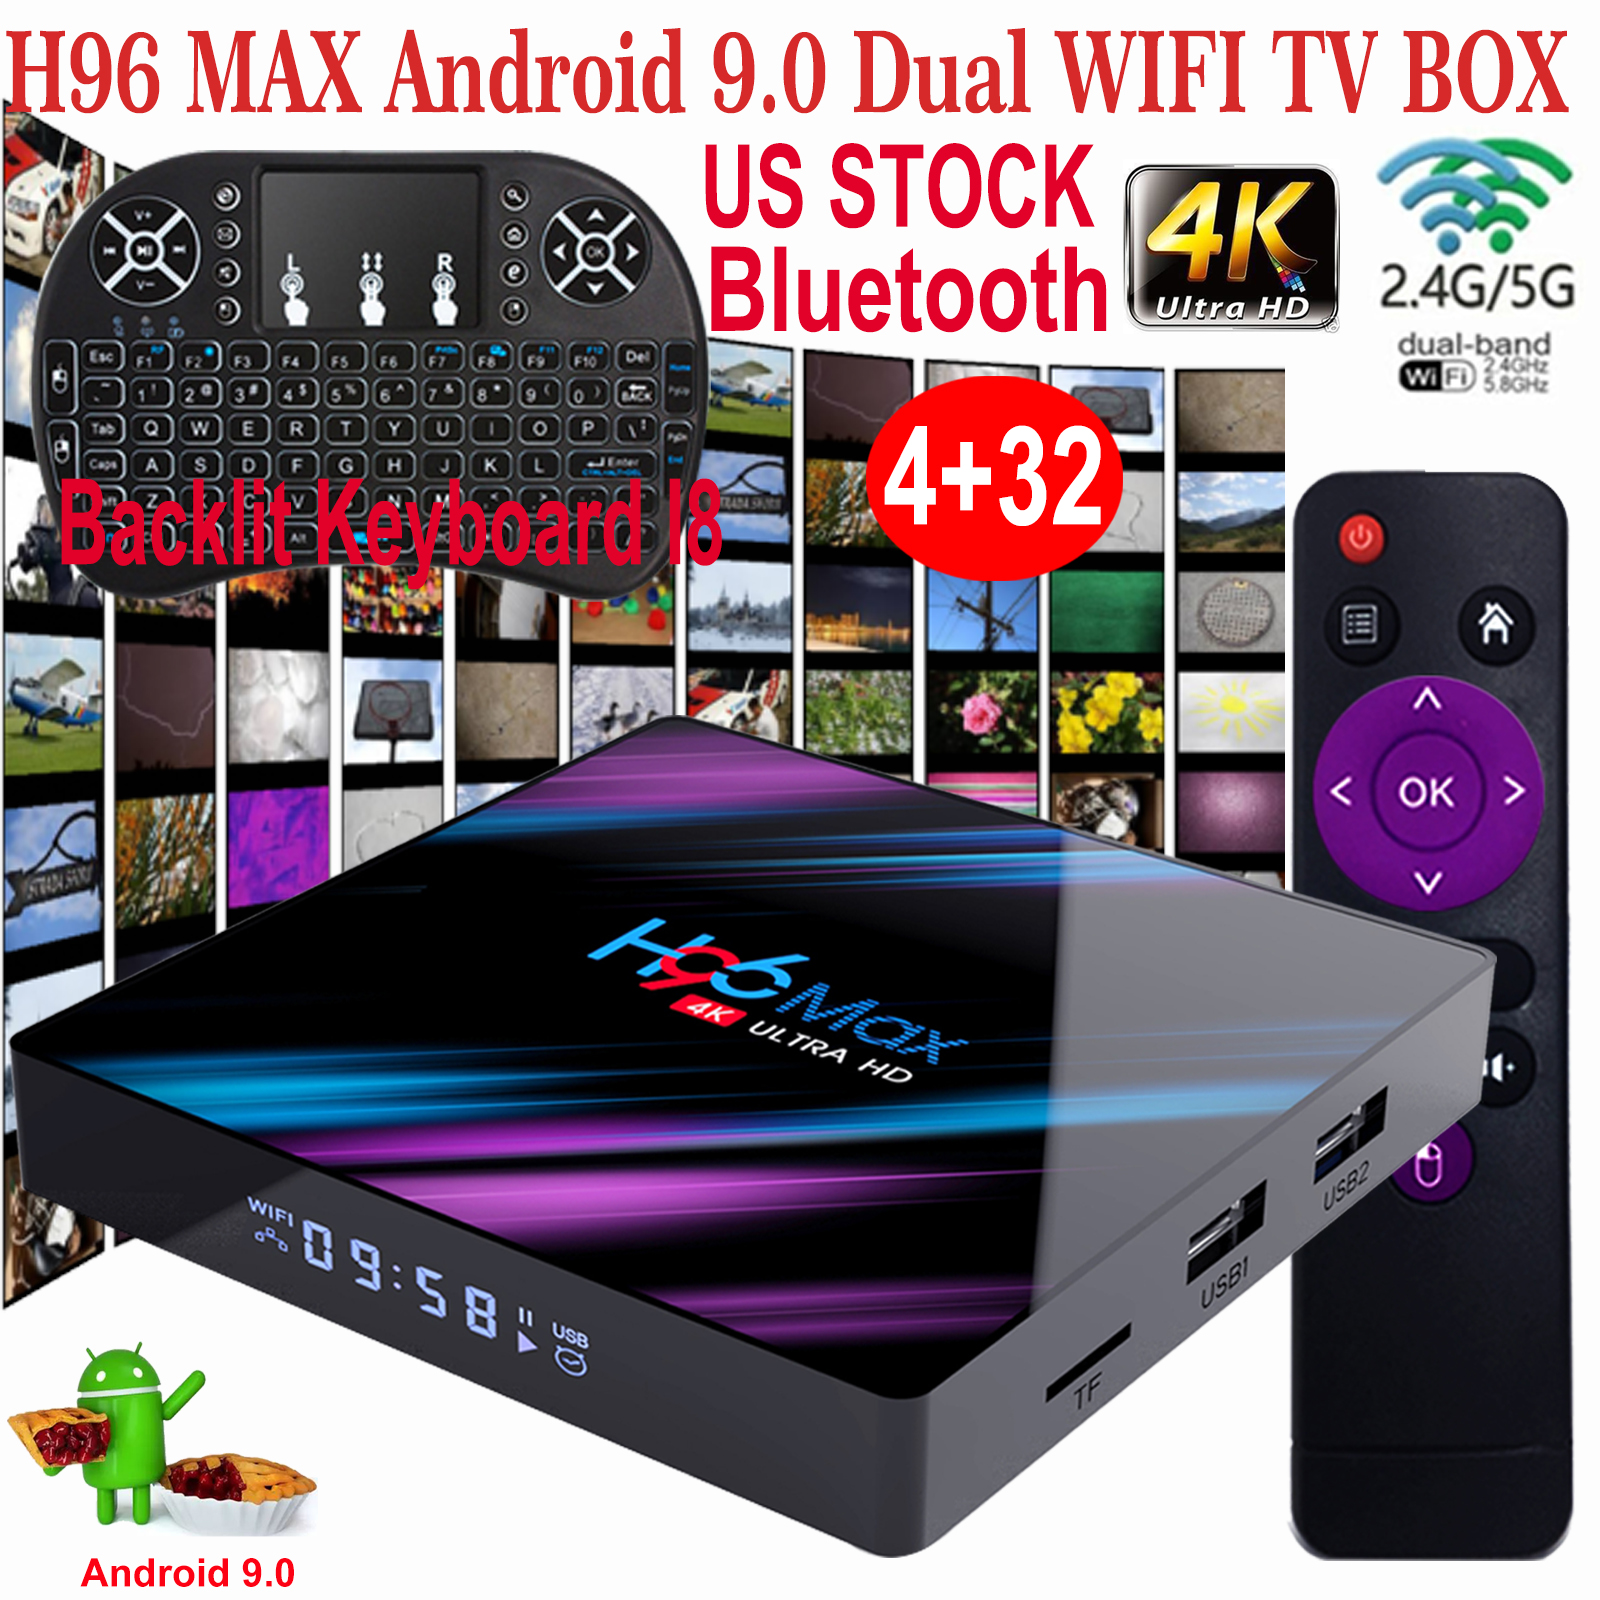 H96 MAX 4+32G Android 9.0 Keyboard TV BOX Quad Core Dual WIFI BT H.265 3D Movies android box core dual h96 keyboard max movies quad wifi